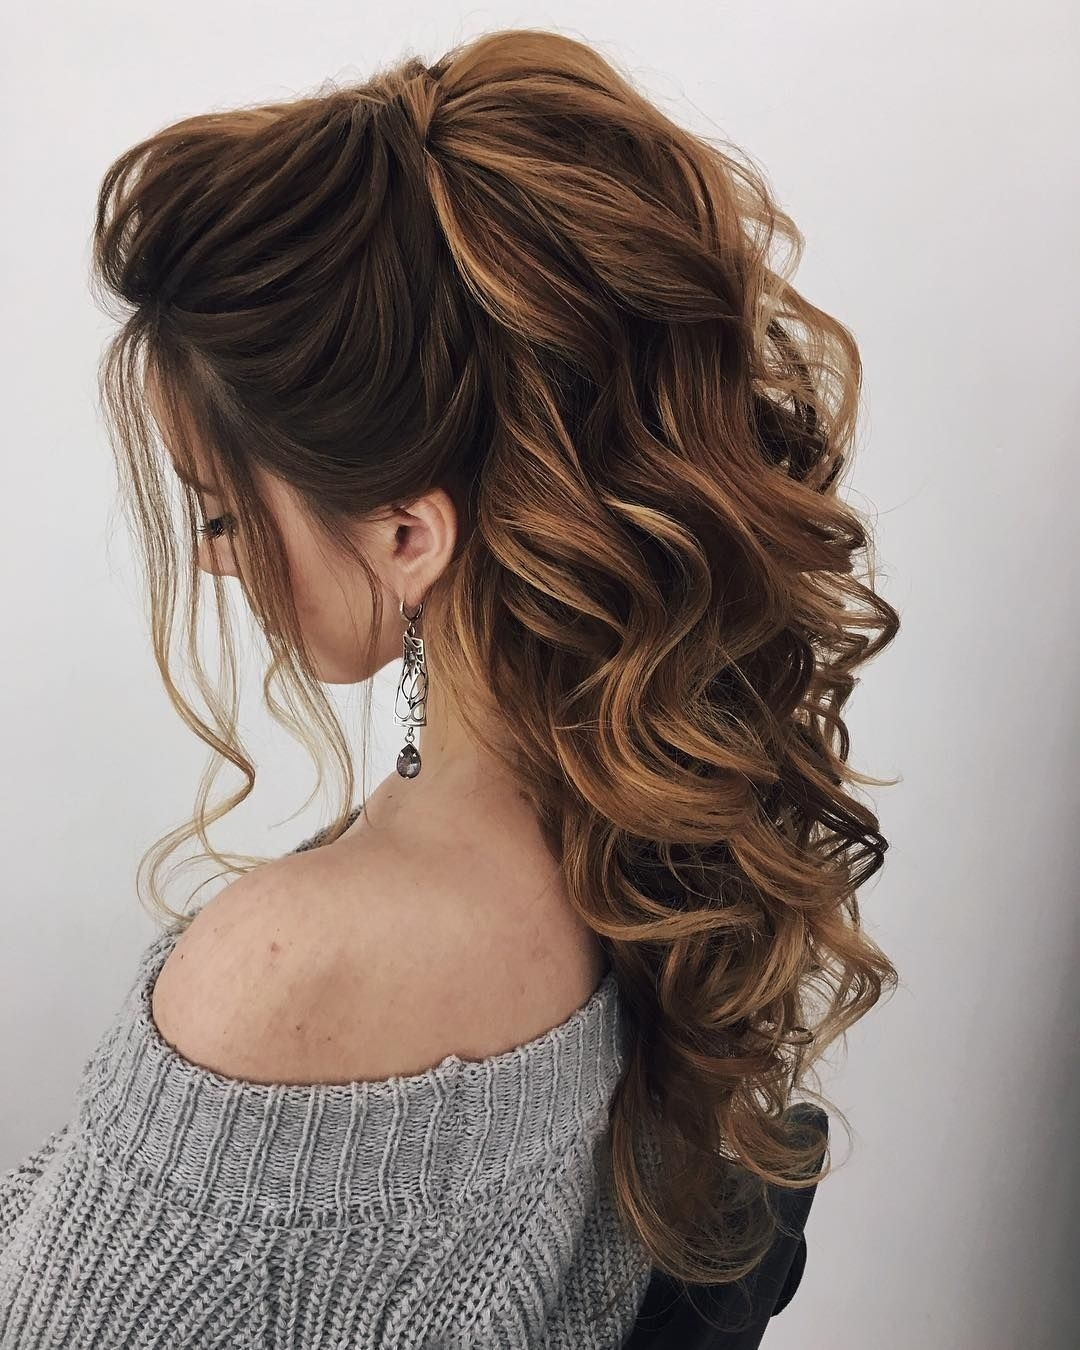 Hairstyle For Wedding For Long Hair: Best Wedding Hairstyle For Sweetheart Neckline